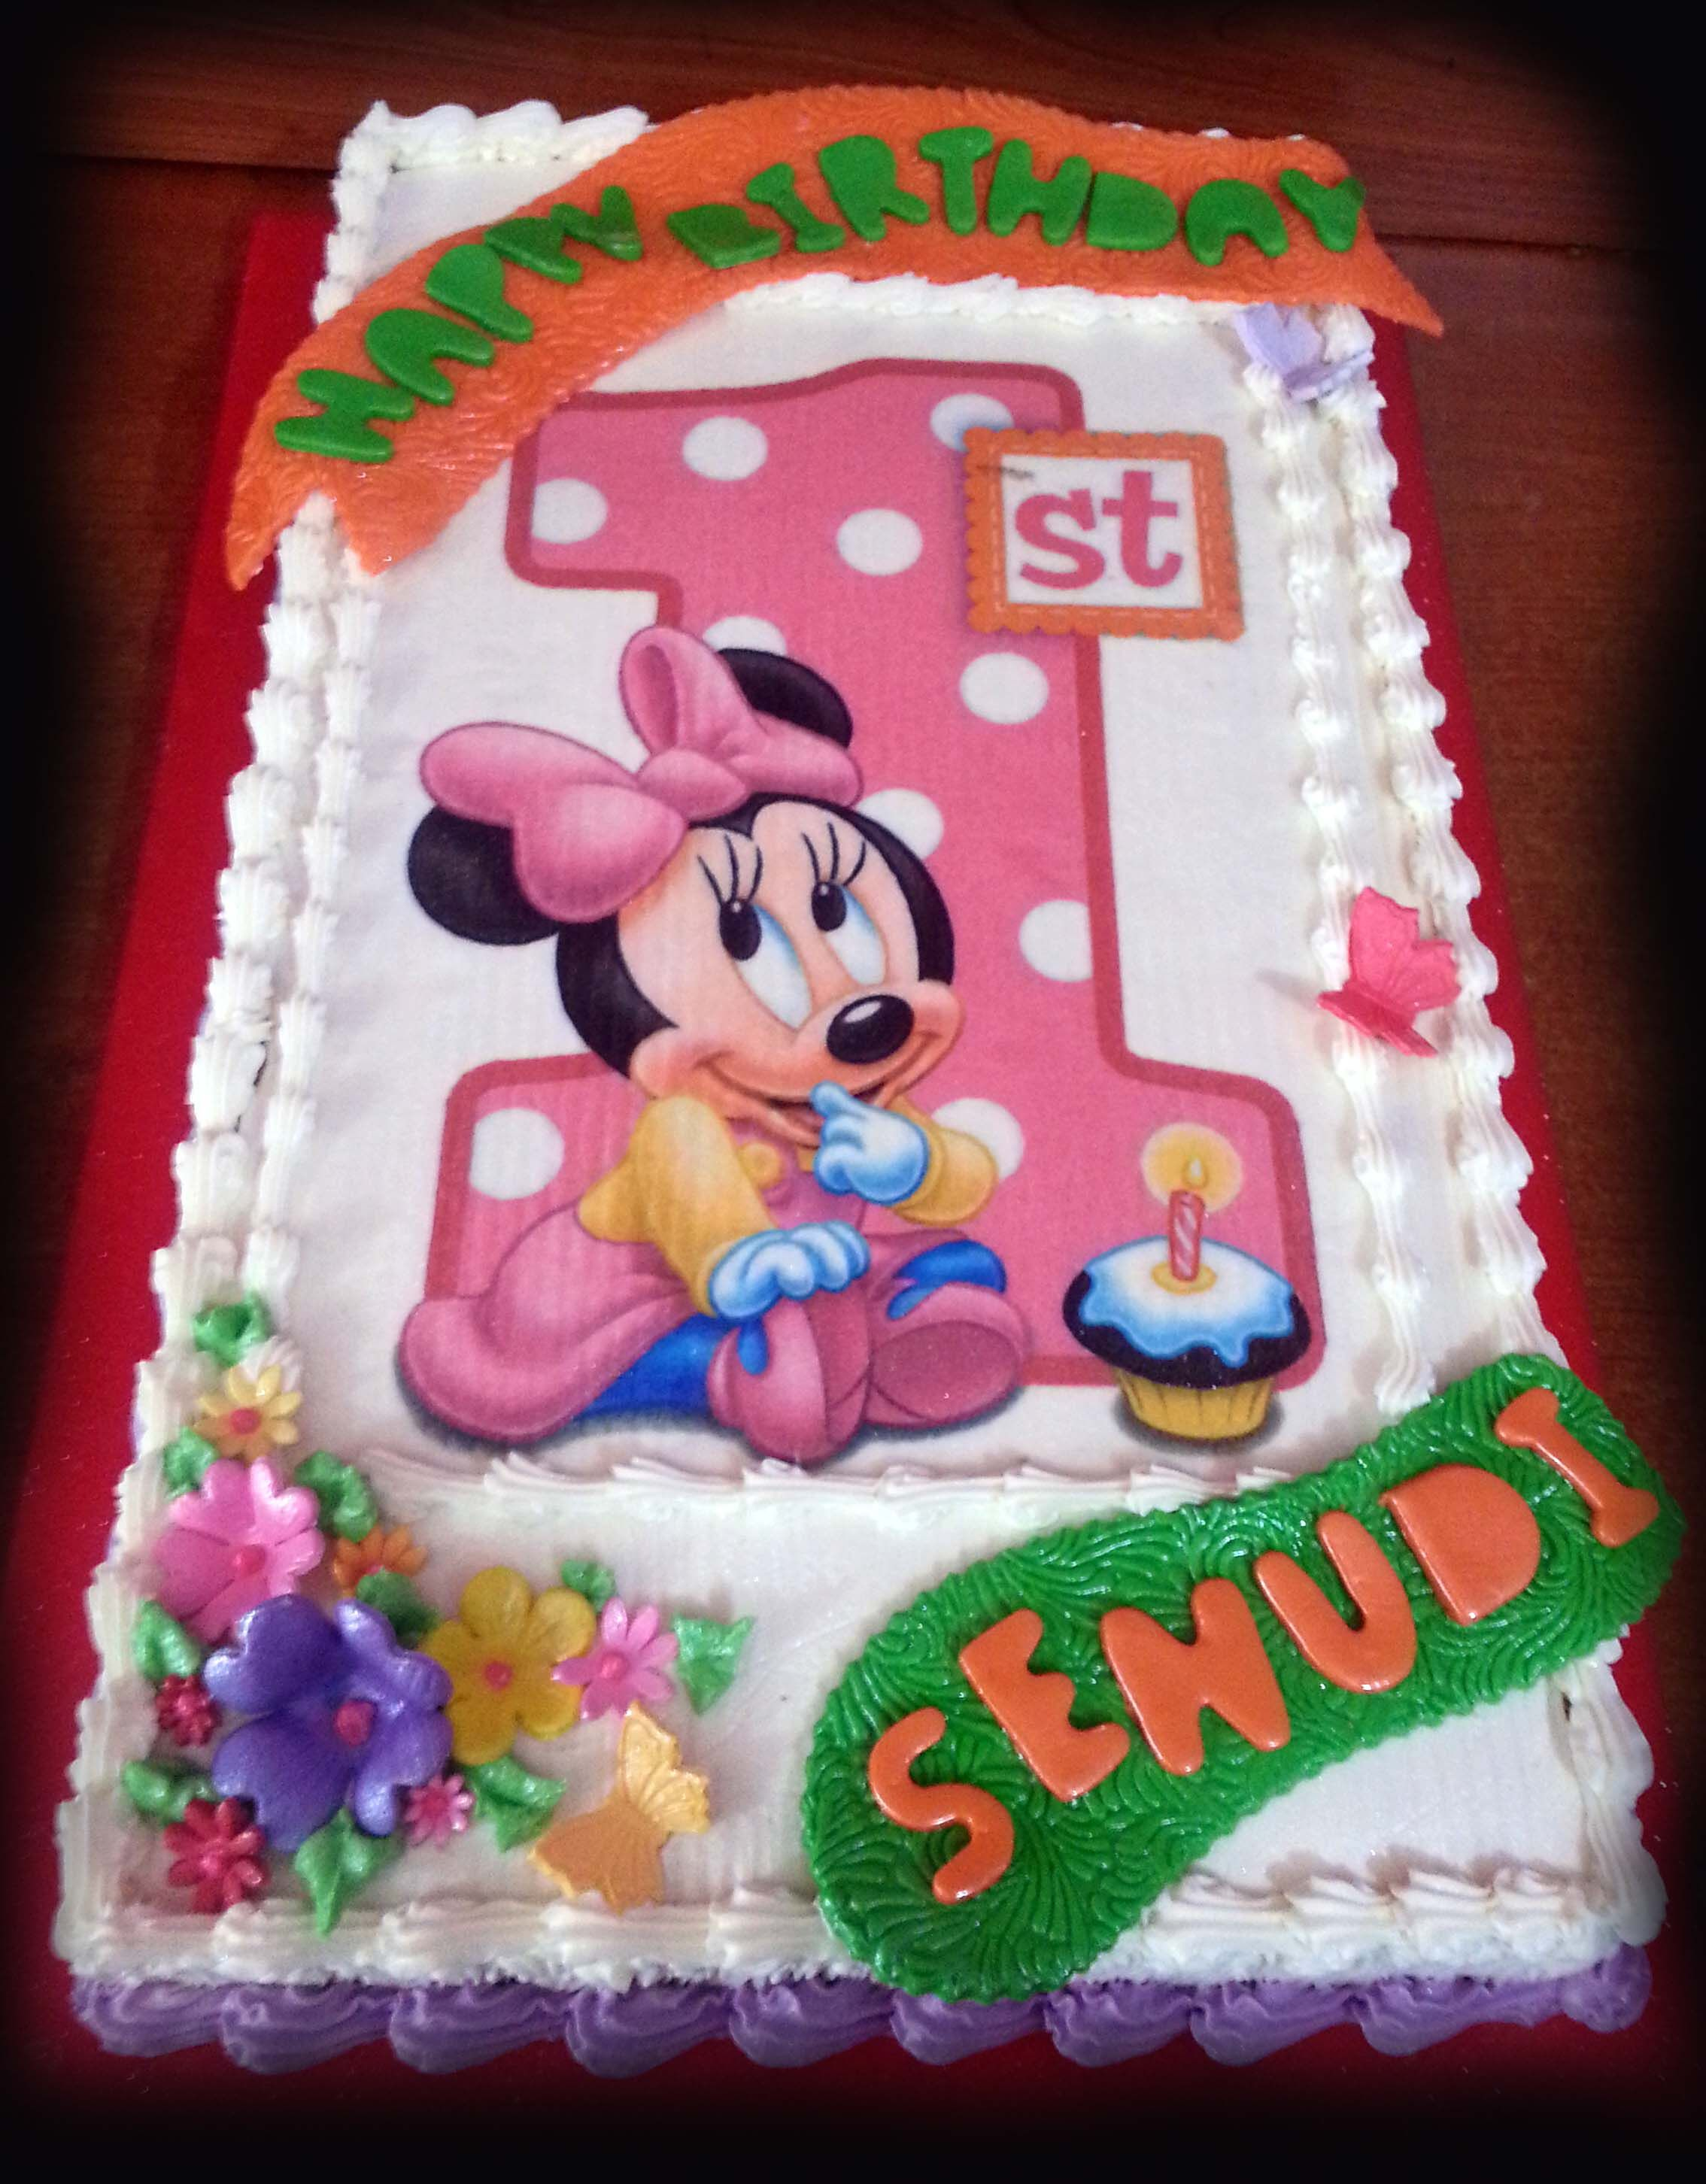 Minnie Mouse One Year Birthday Cake For A Baby Girl Done By Me And My Mom Birthday Cake With Photo Minnie Mouse Birthday Cakes Baby First Cake